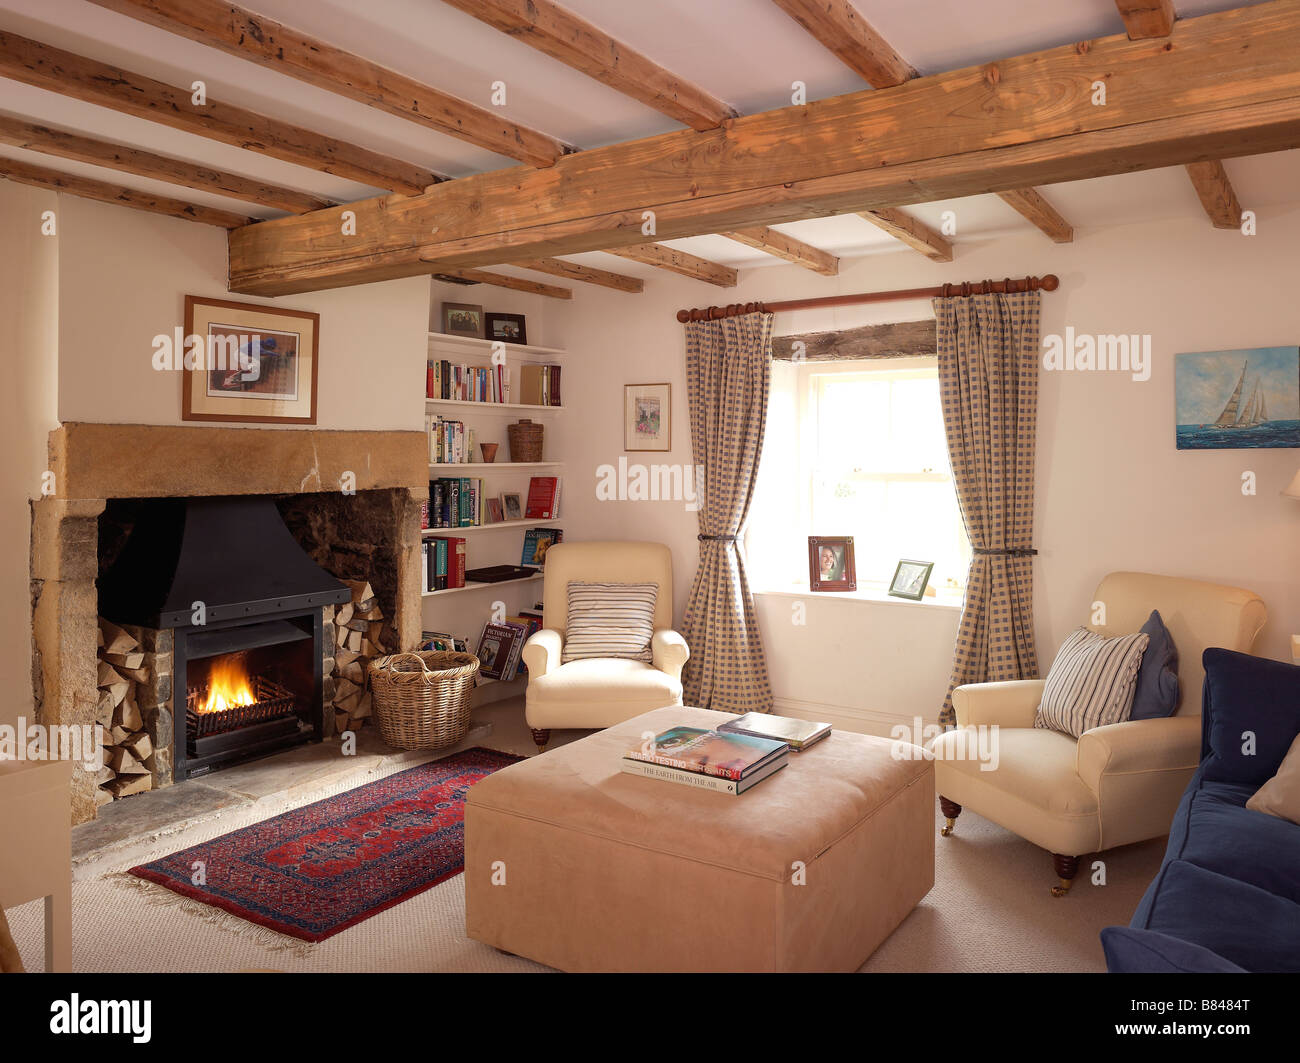 country style living room with lit open fire and cream furniture with